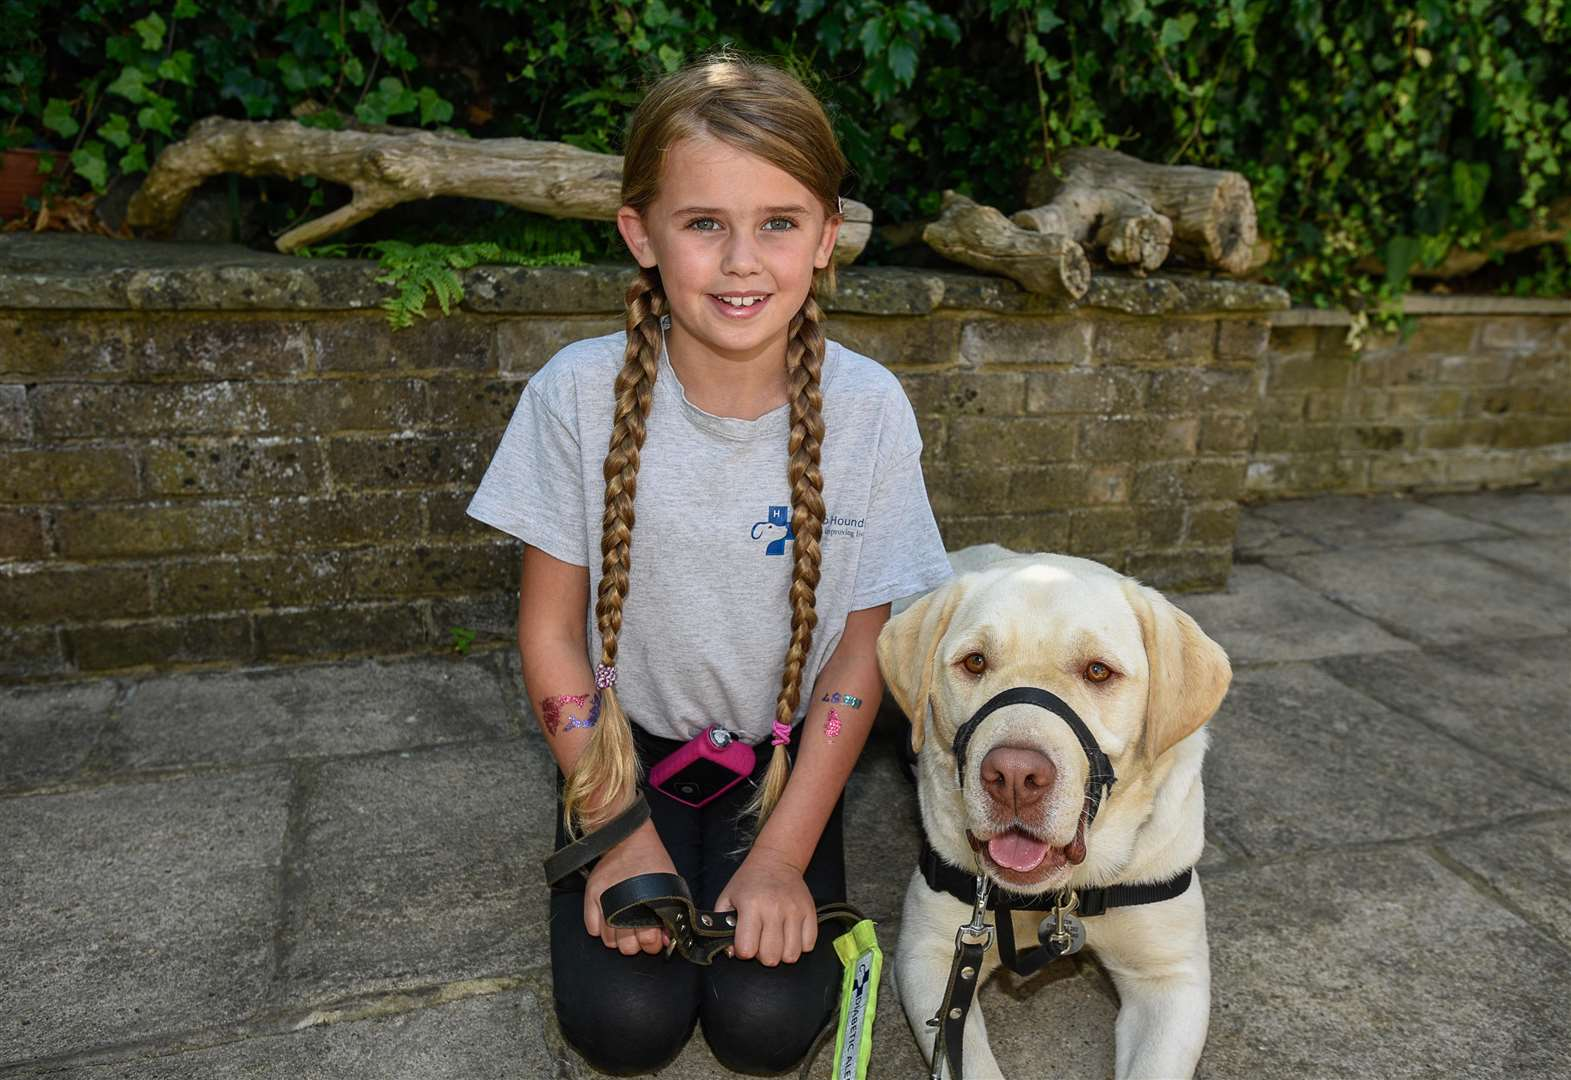 Diabetic girl's family launch fundraiser for life-saving dog